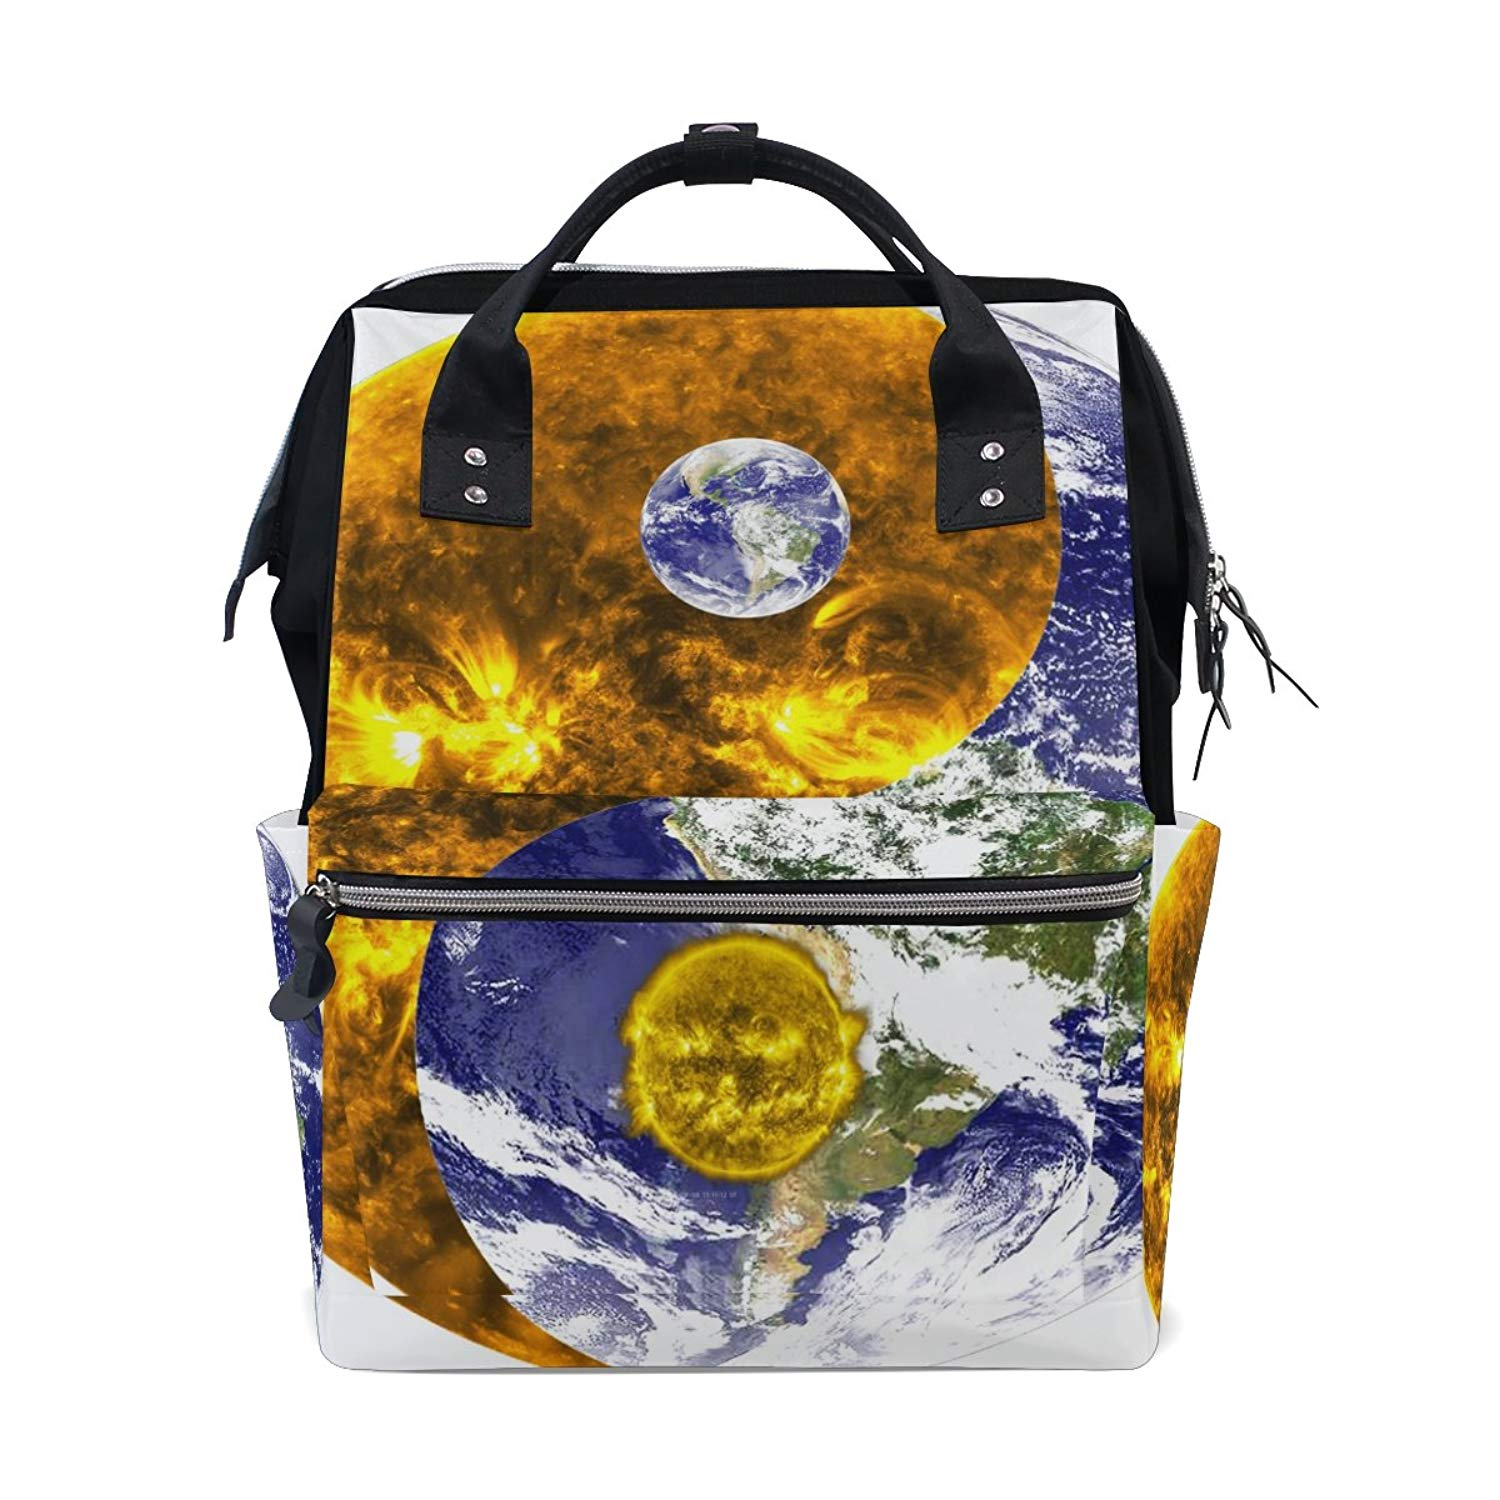 Cheap Doctor Bag Style Find Deals On Line At Bowling Handbag Get Quotations Backpack School Ying Yang Canvas Travel Daypack